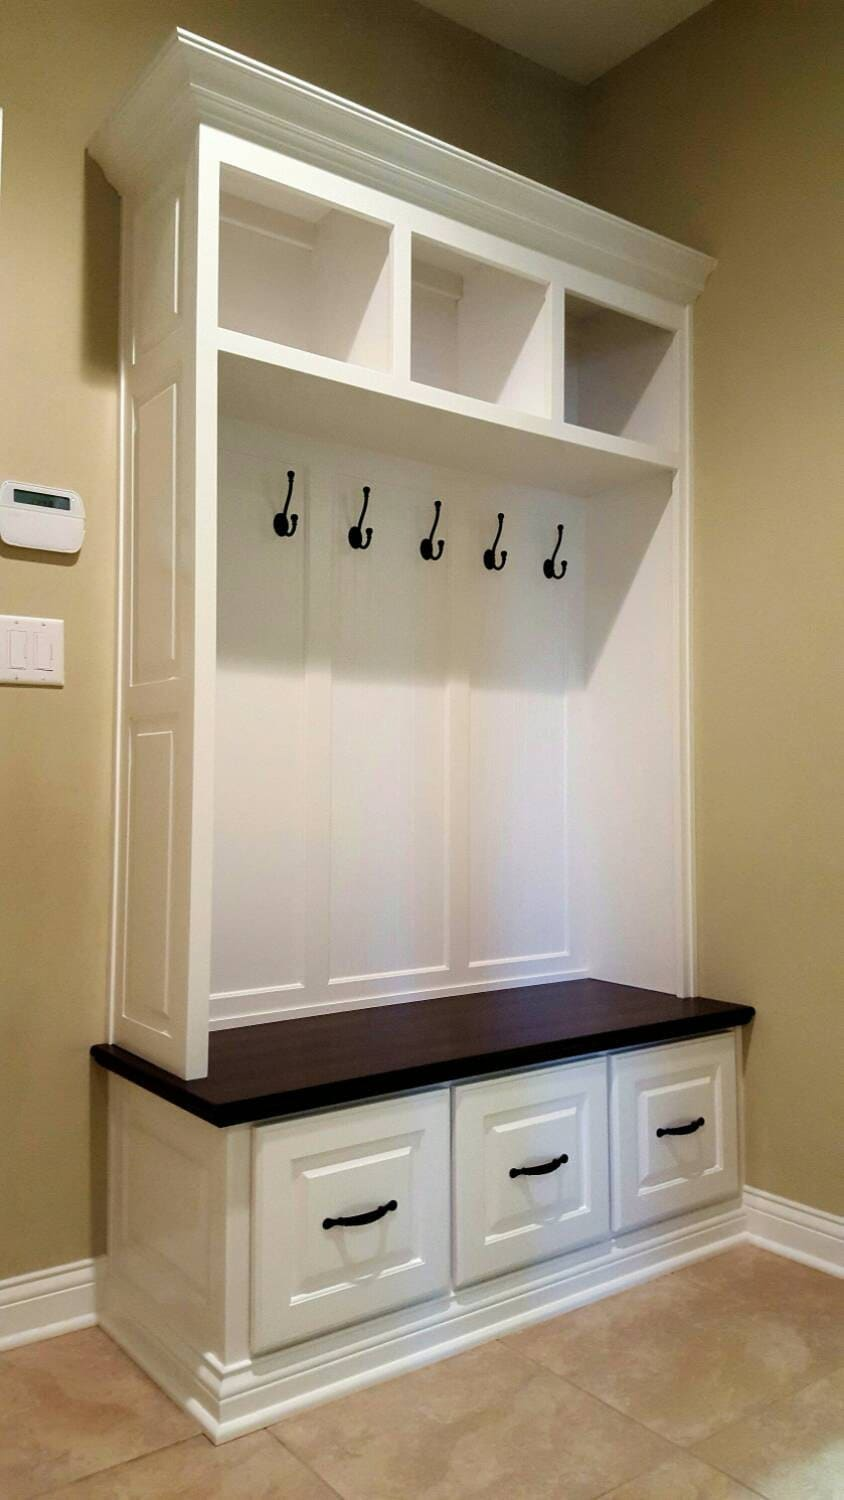 Mudroom Storage For Sale : Mudroom lockers bench storage furniture by speckcustomwoodwork